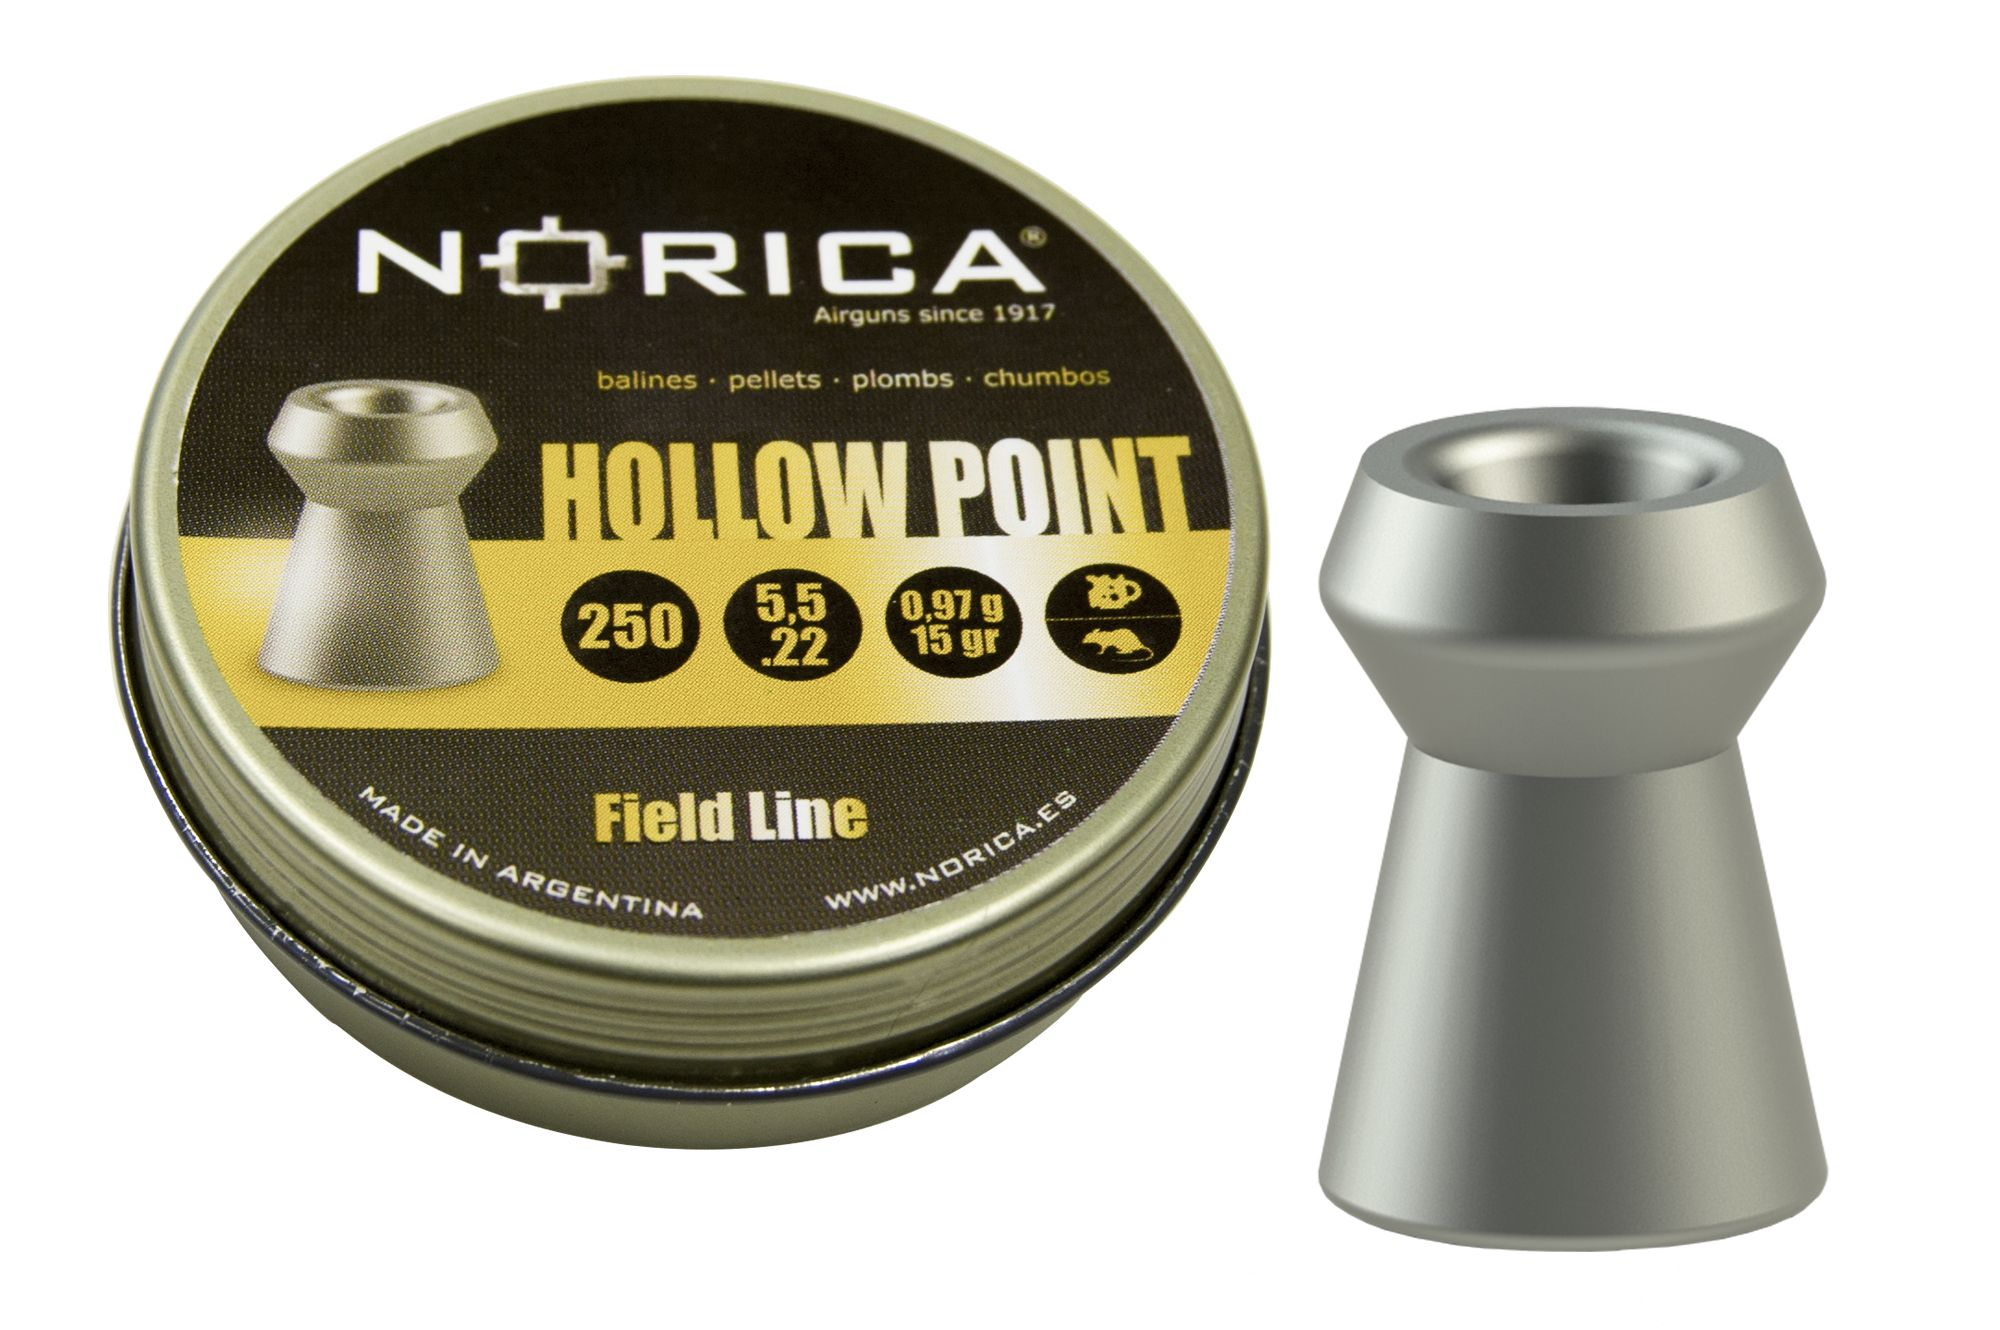 Norica Hollow Point (Tin) .177 (4.5mm)